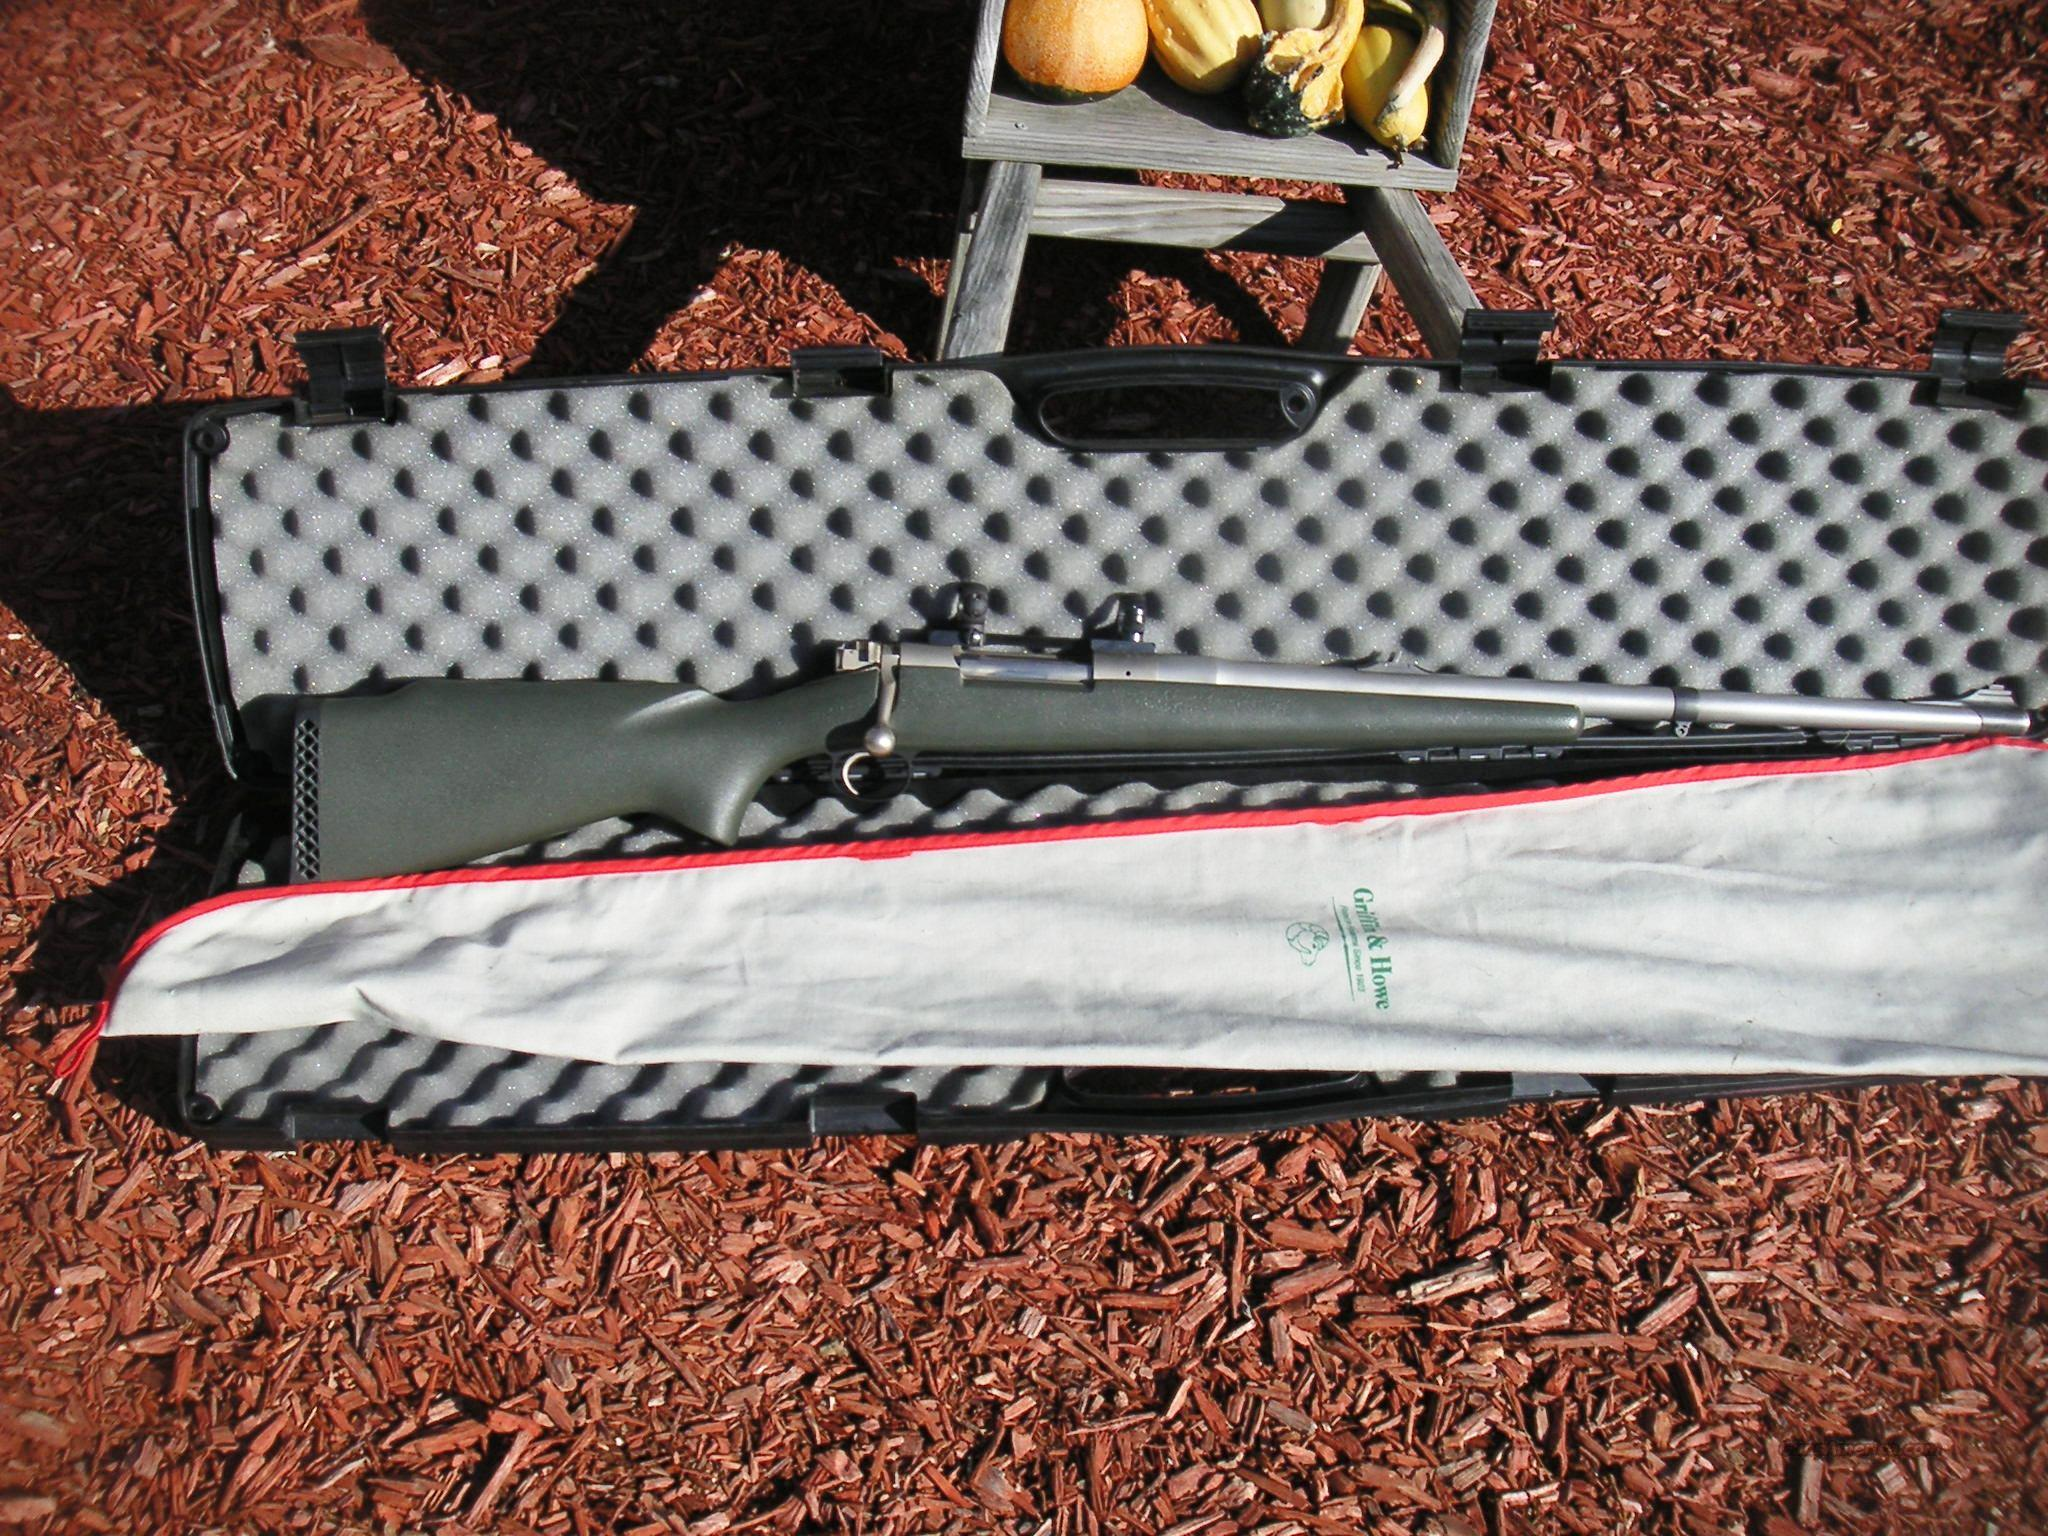 Butch Searcy Safari Magazine Rifle-416 Hoffman  Guns > Rifles > Custom Rifles > Bolt Action